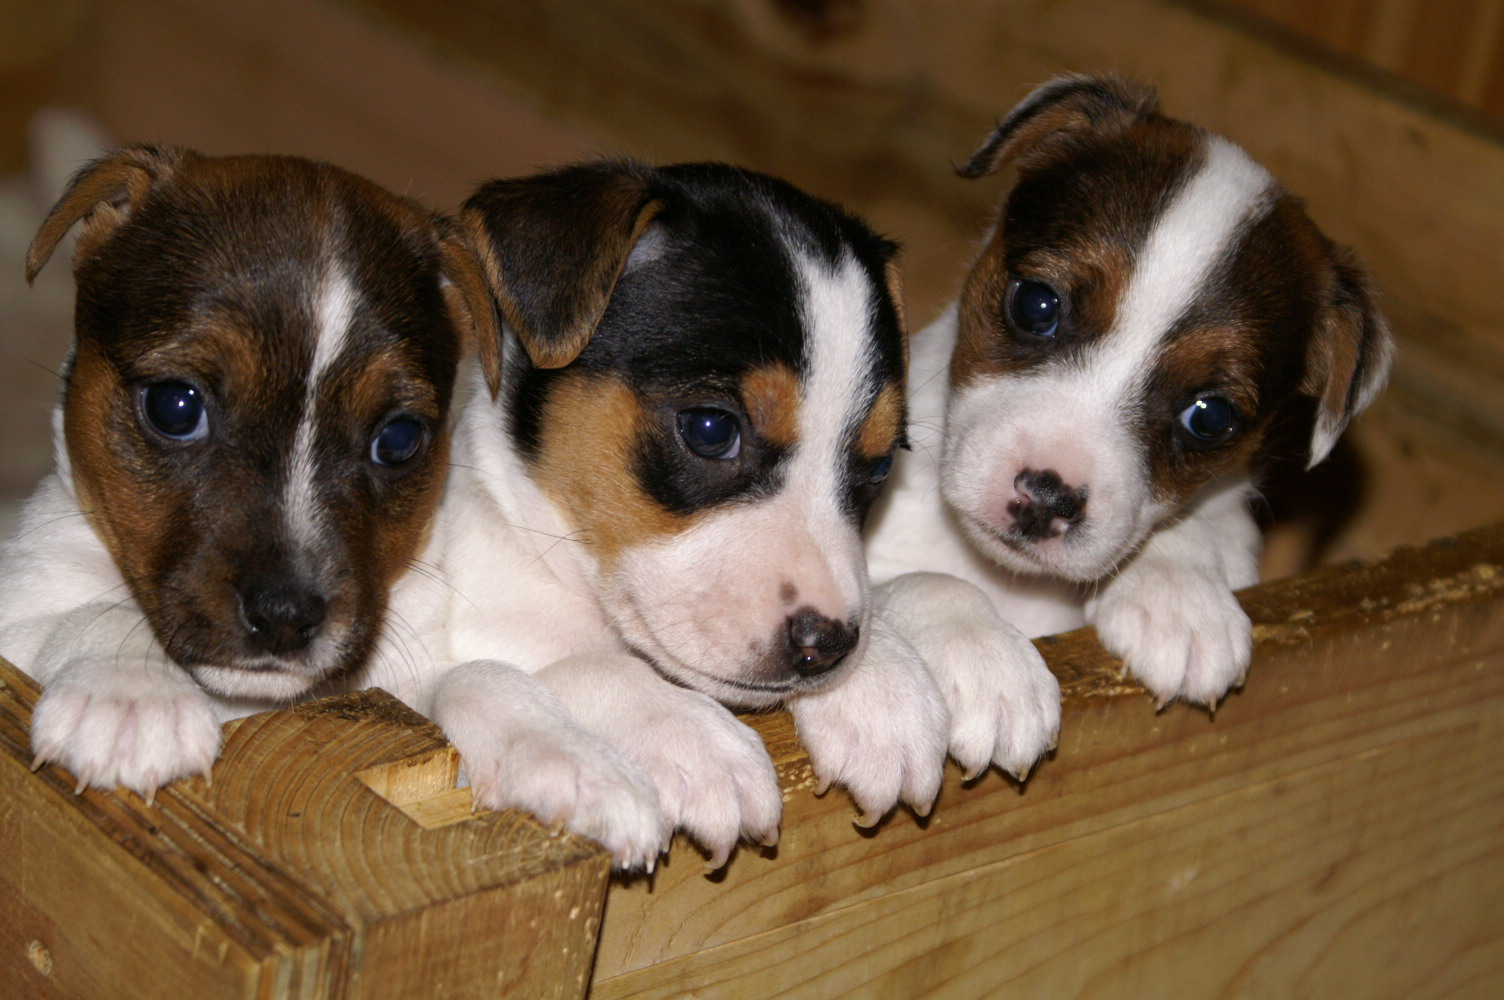 Jack Russell Terrier puppies wallpaper